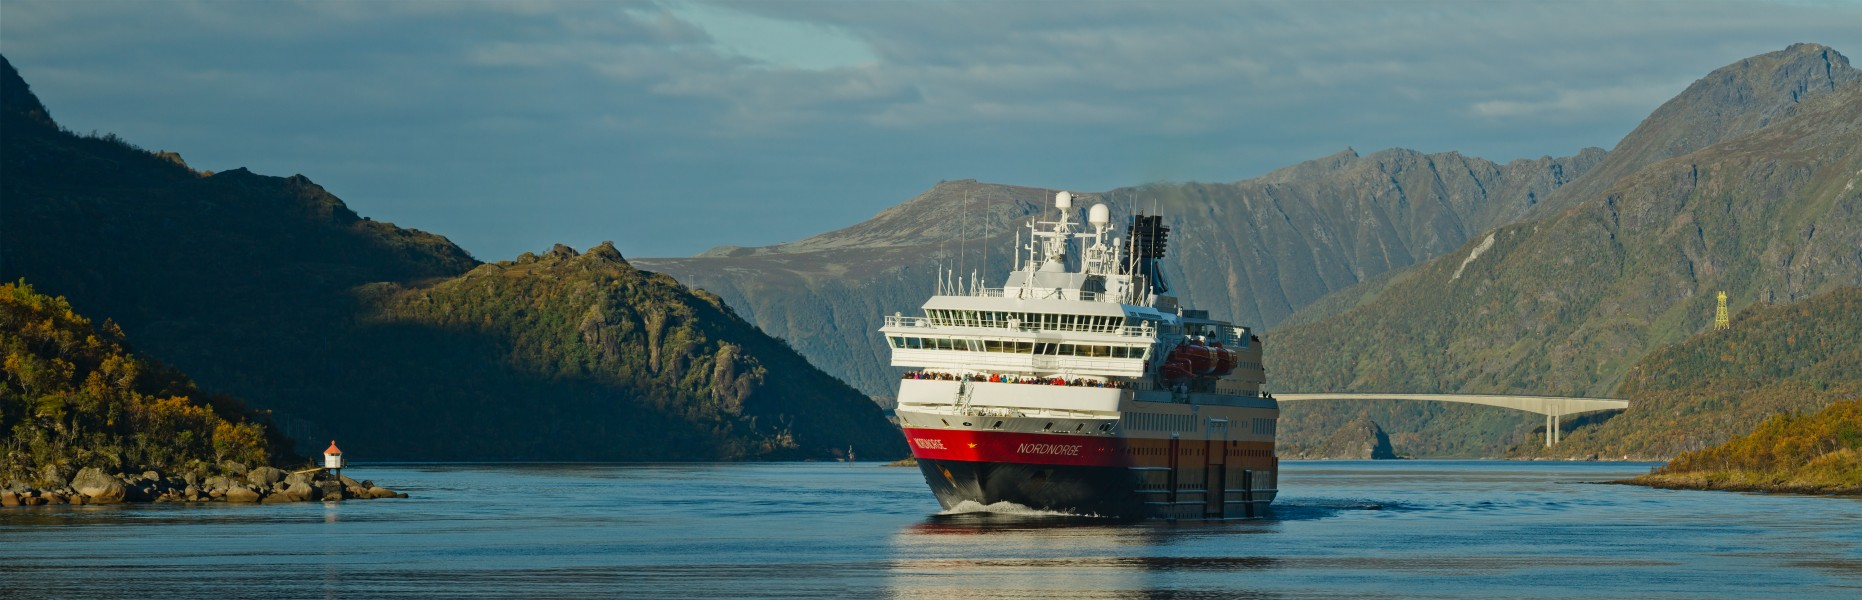 MS Nordnorge, Hurtigruten in Raftsundet, Nordland, Norway, 2015 September